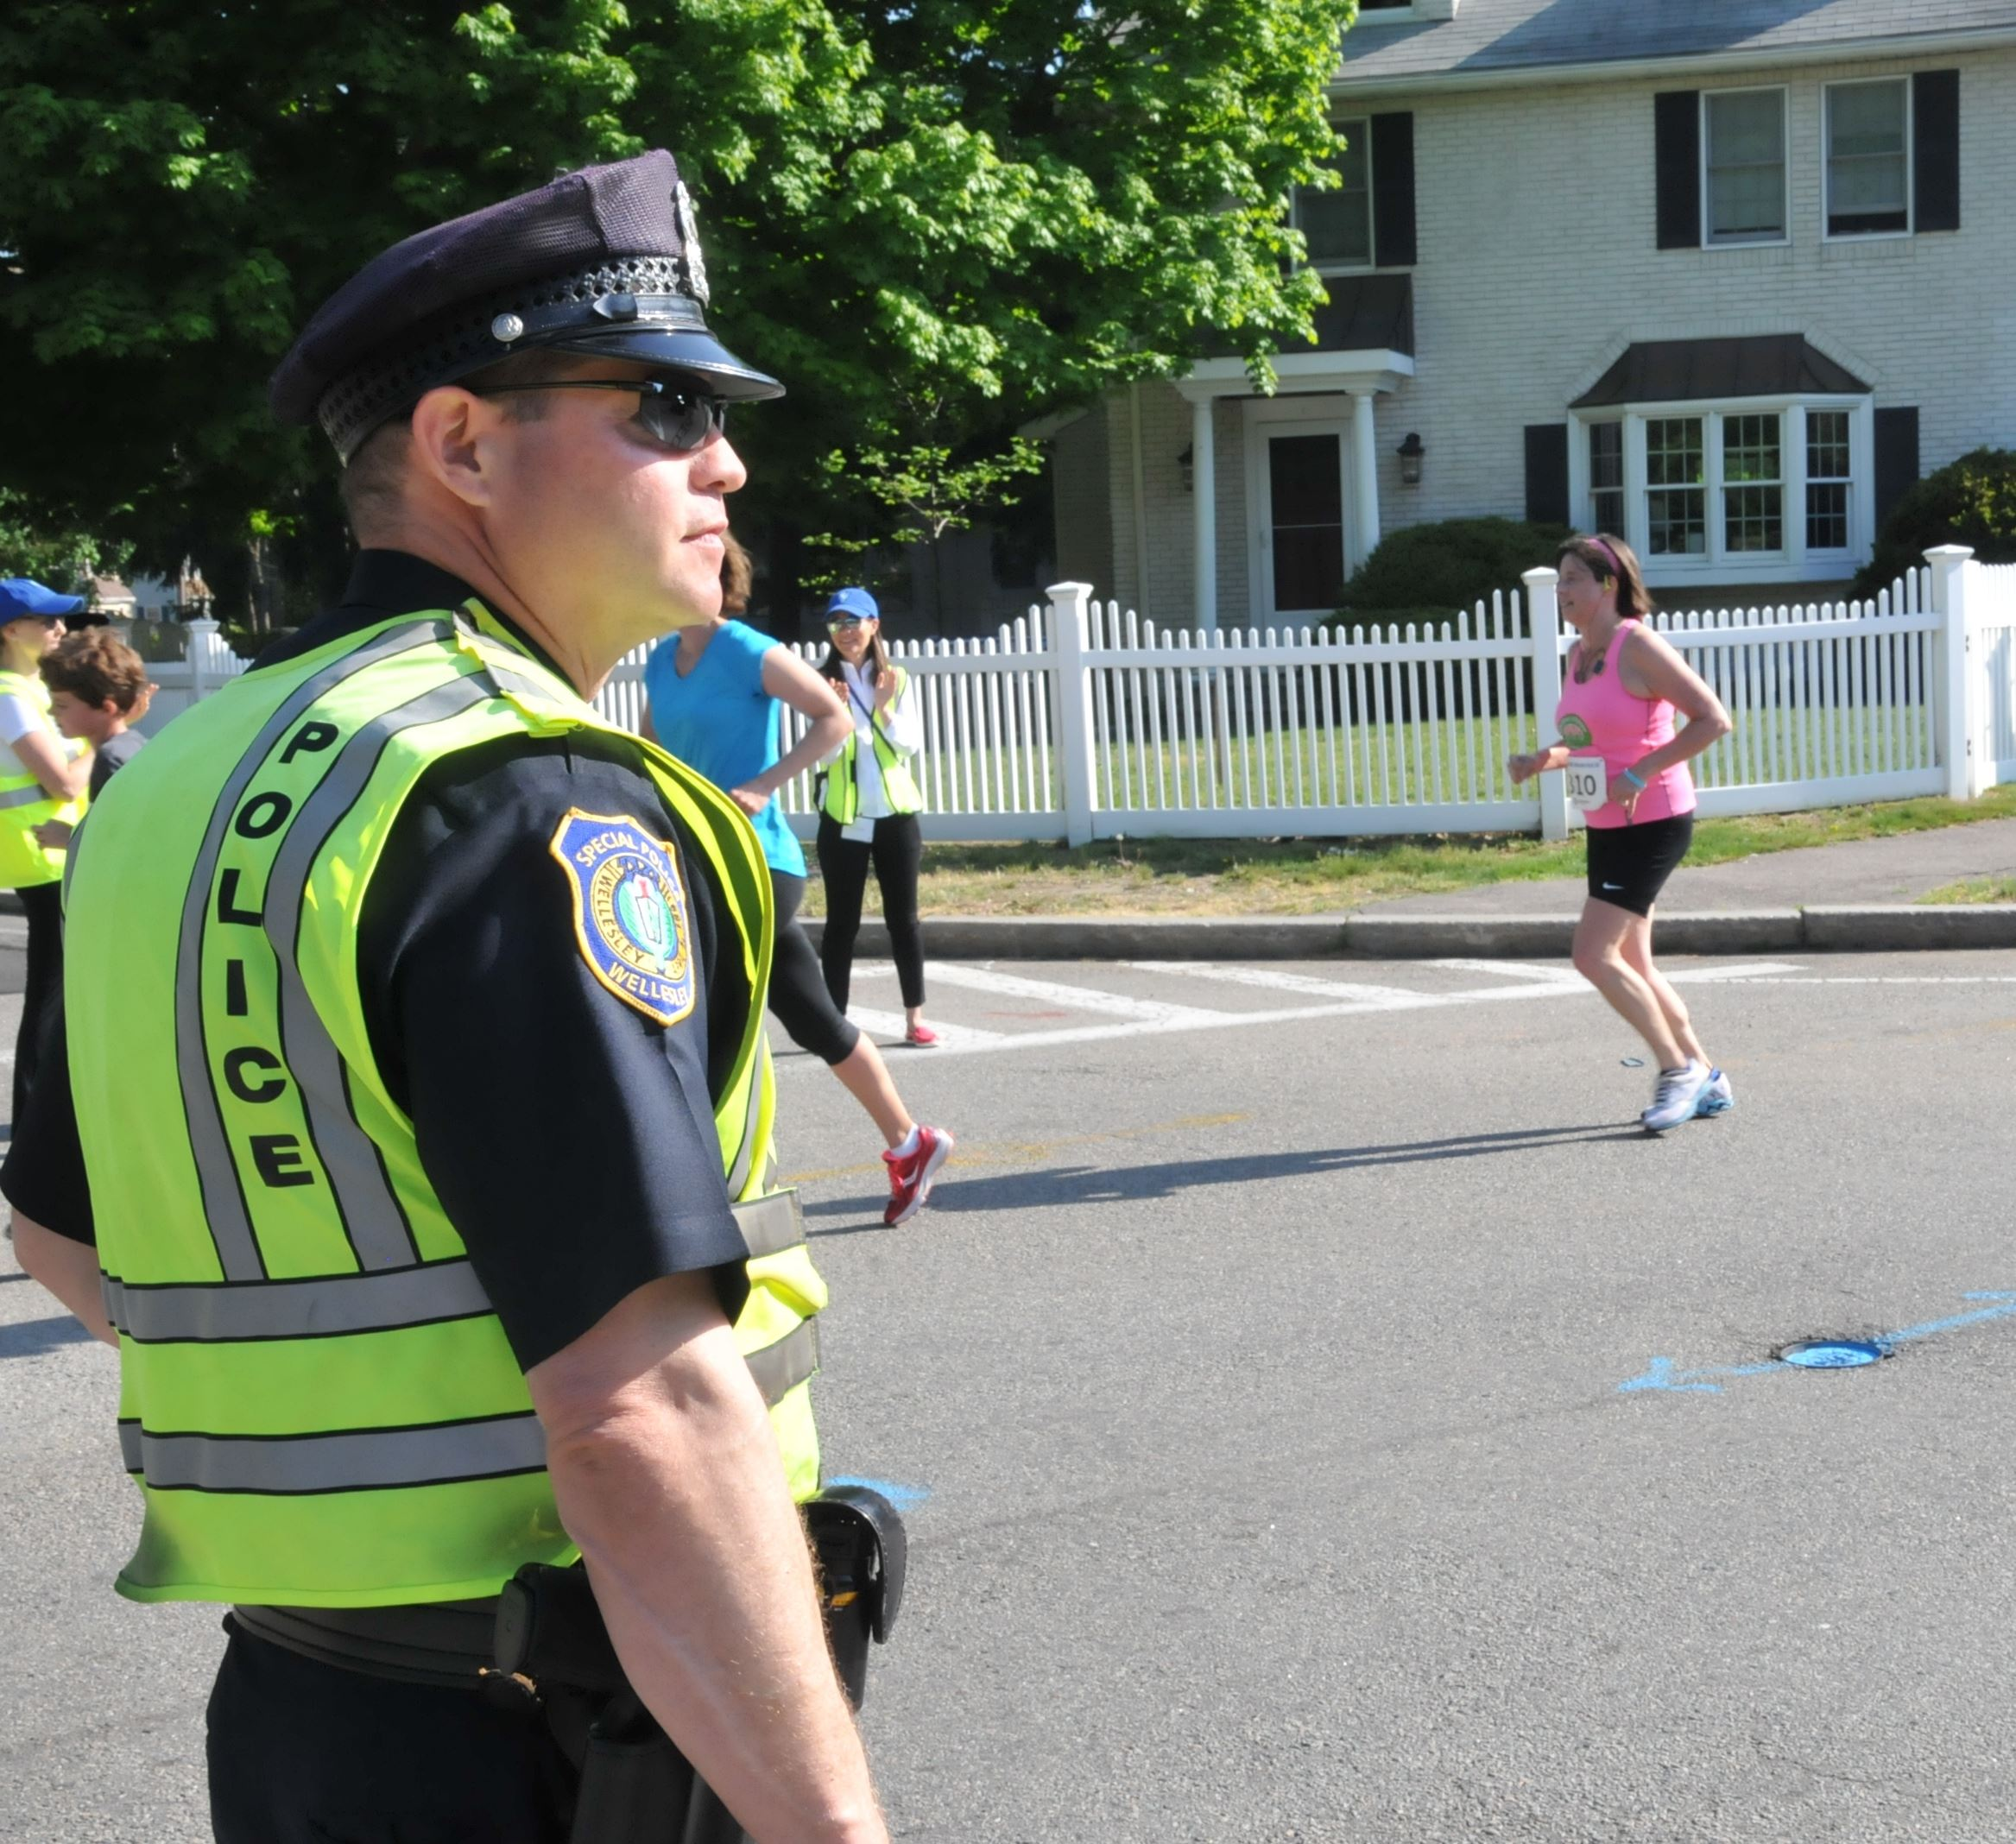 Special Police Officer helping with a running event